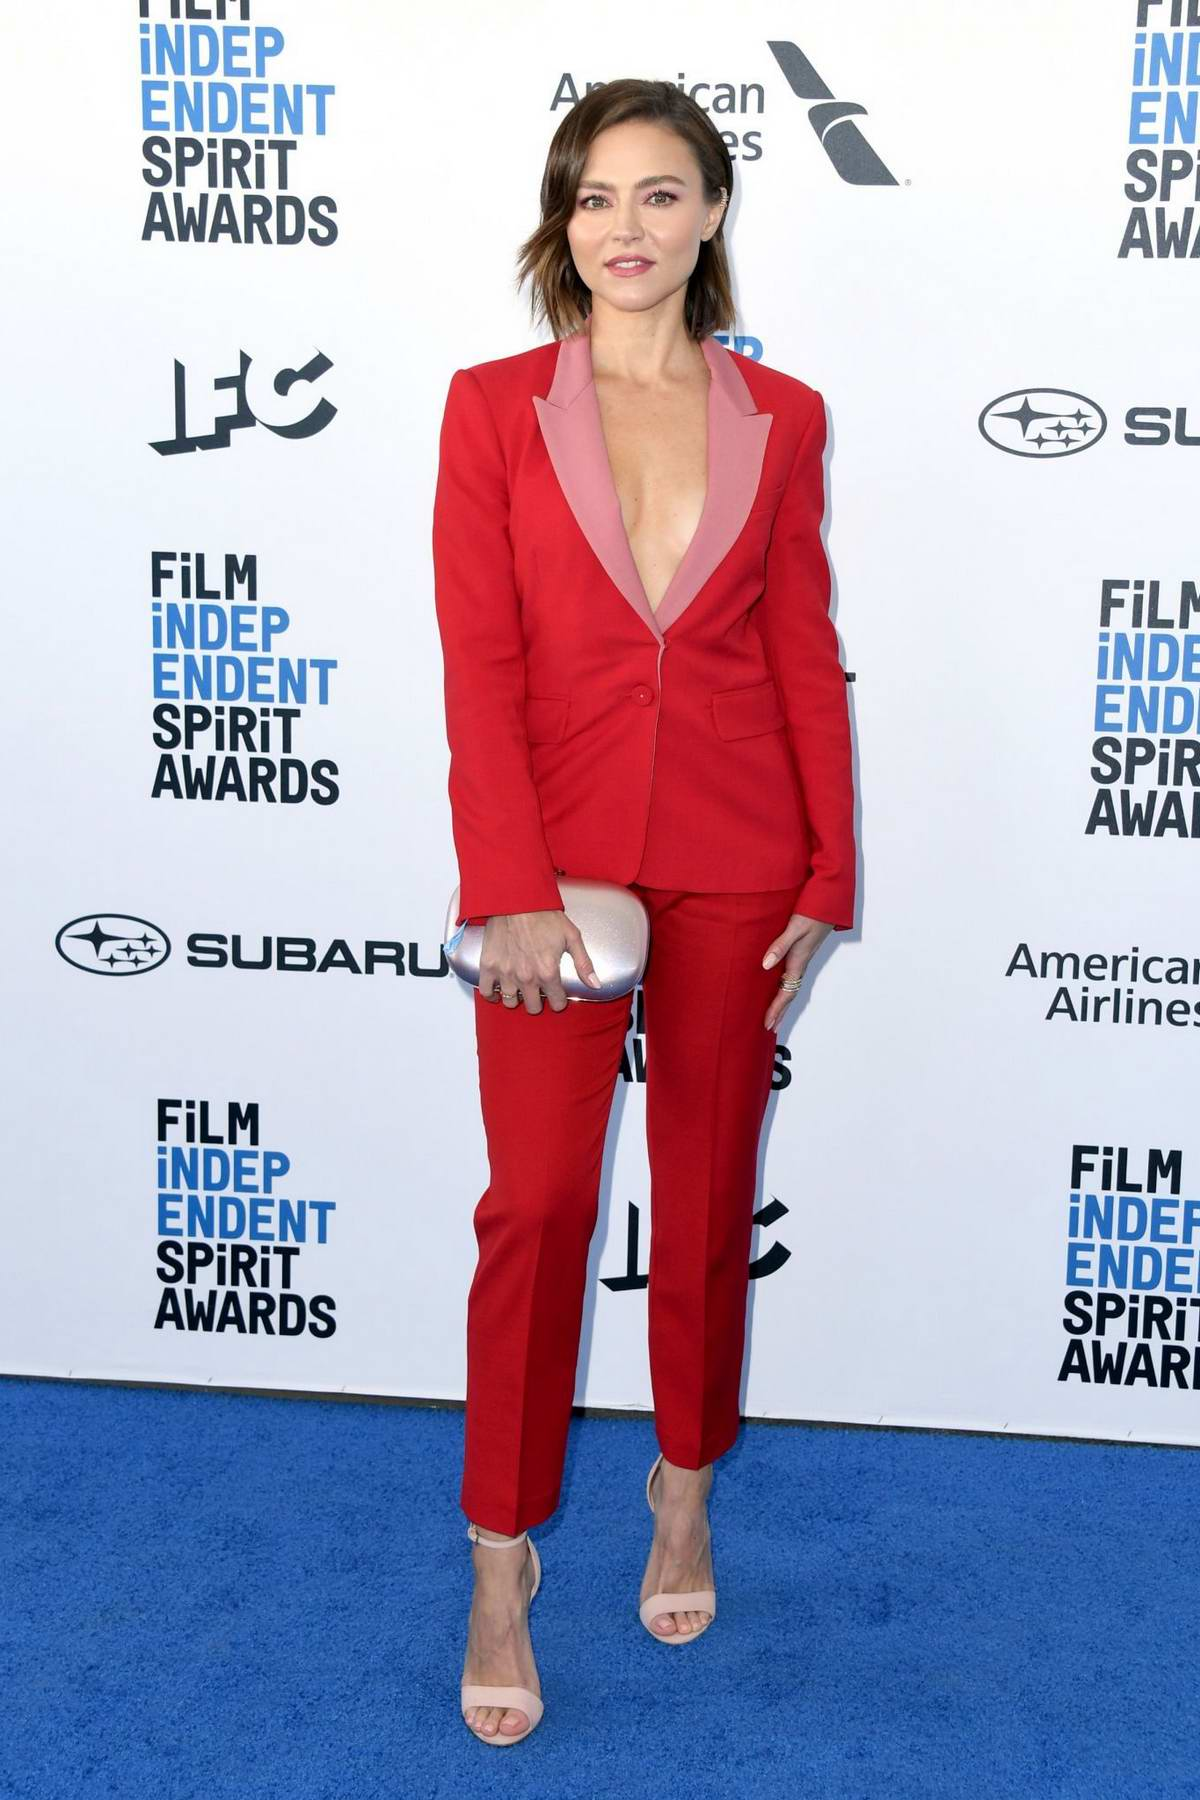 Trieste Kelly Dunn attends the 34th Film Independent Spirit Awards in Santa Monica, California